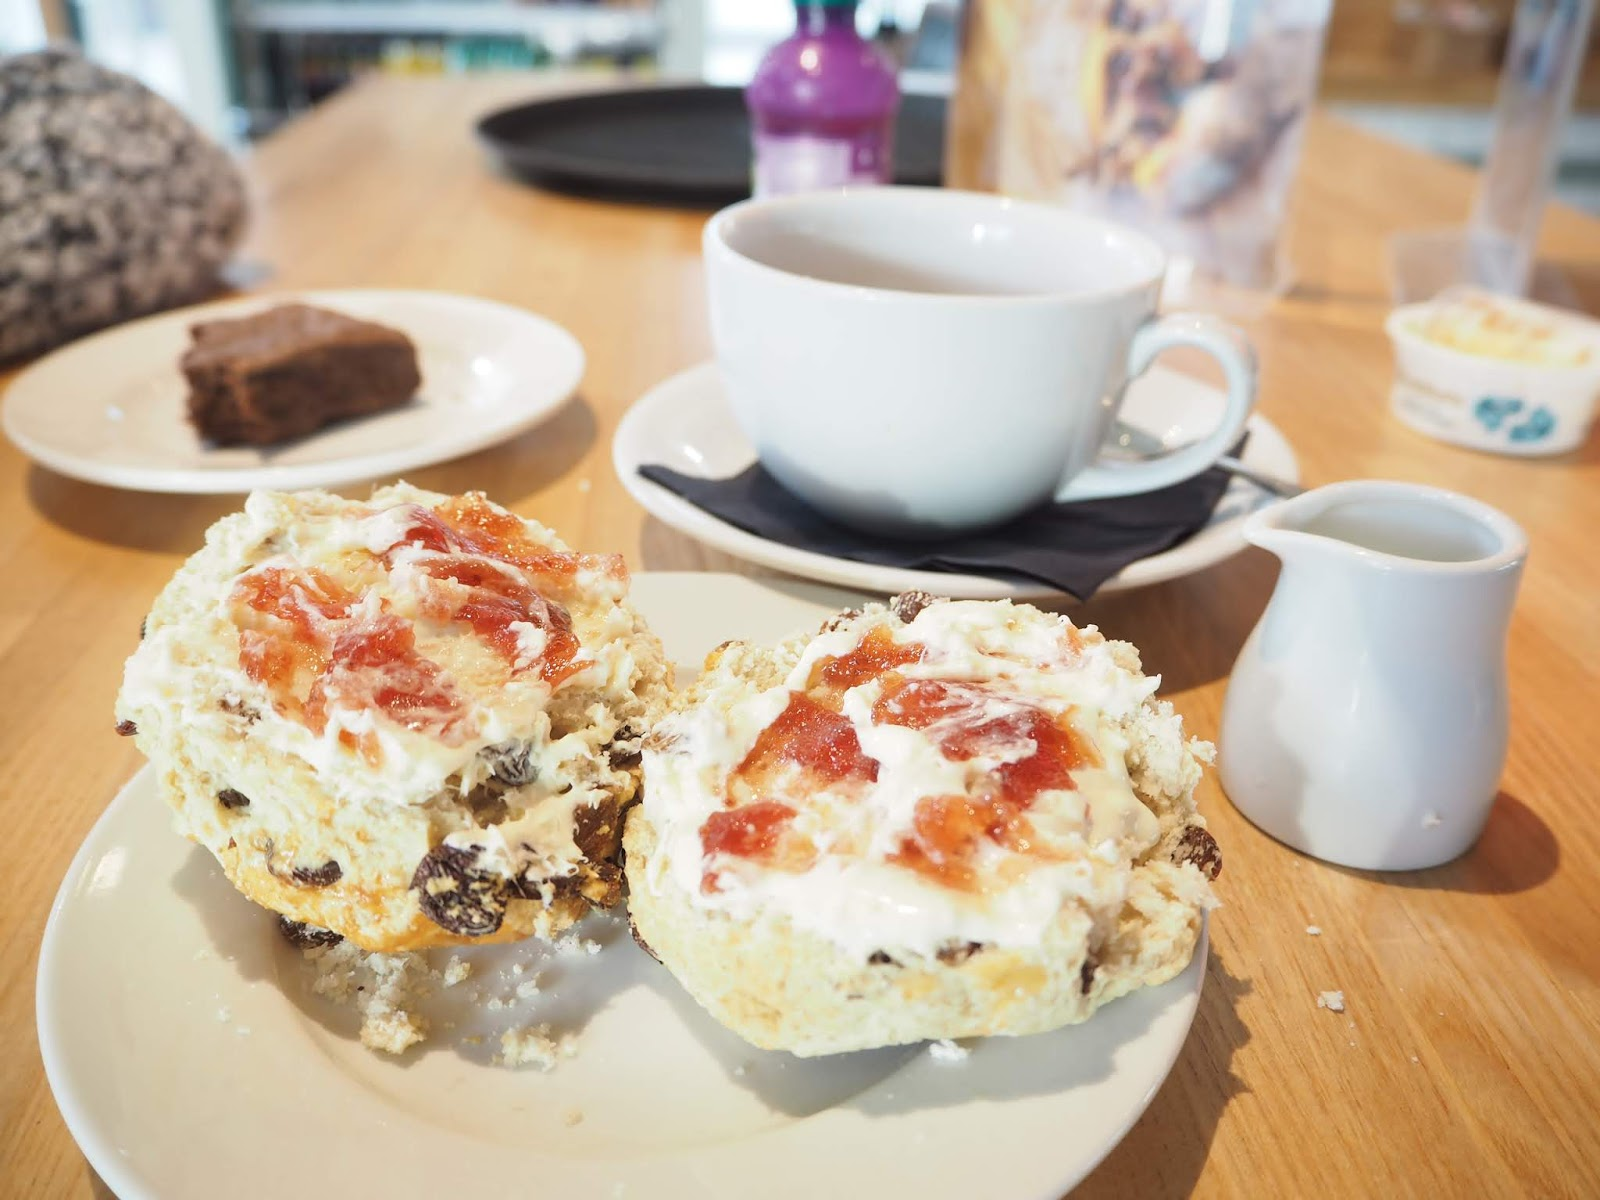 scone jame cream brewhouse coffee pavillion shopping centre thornaby middlesbrough